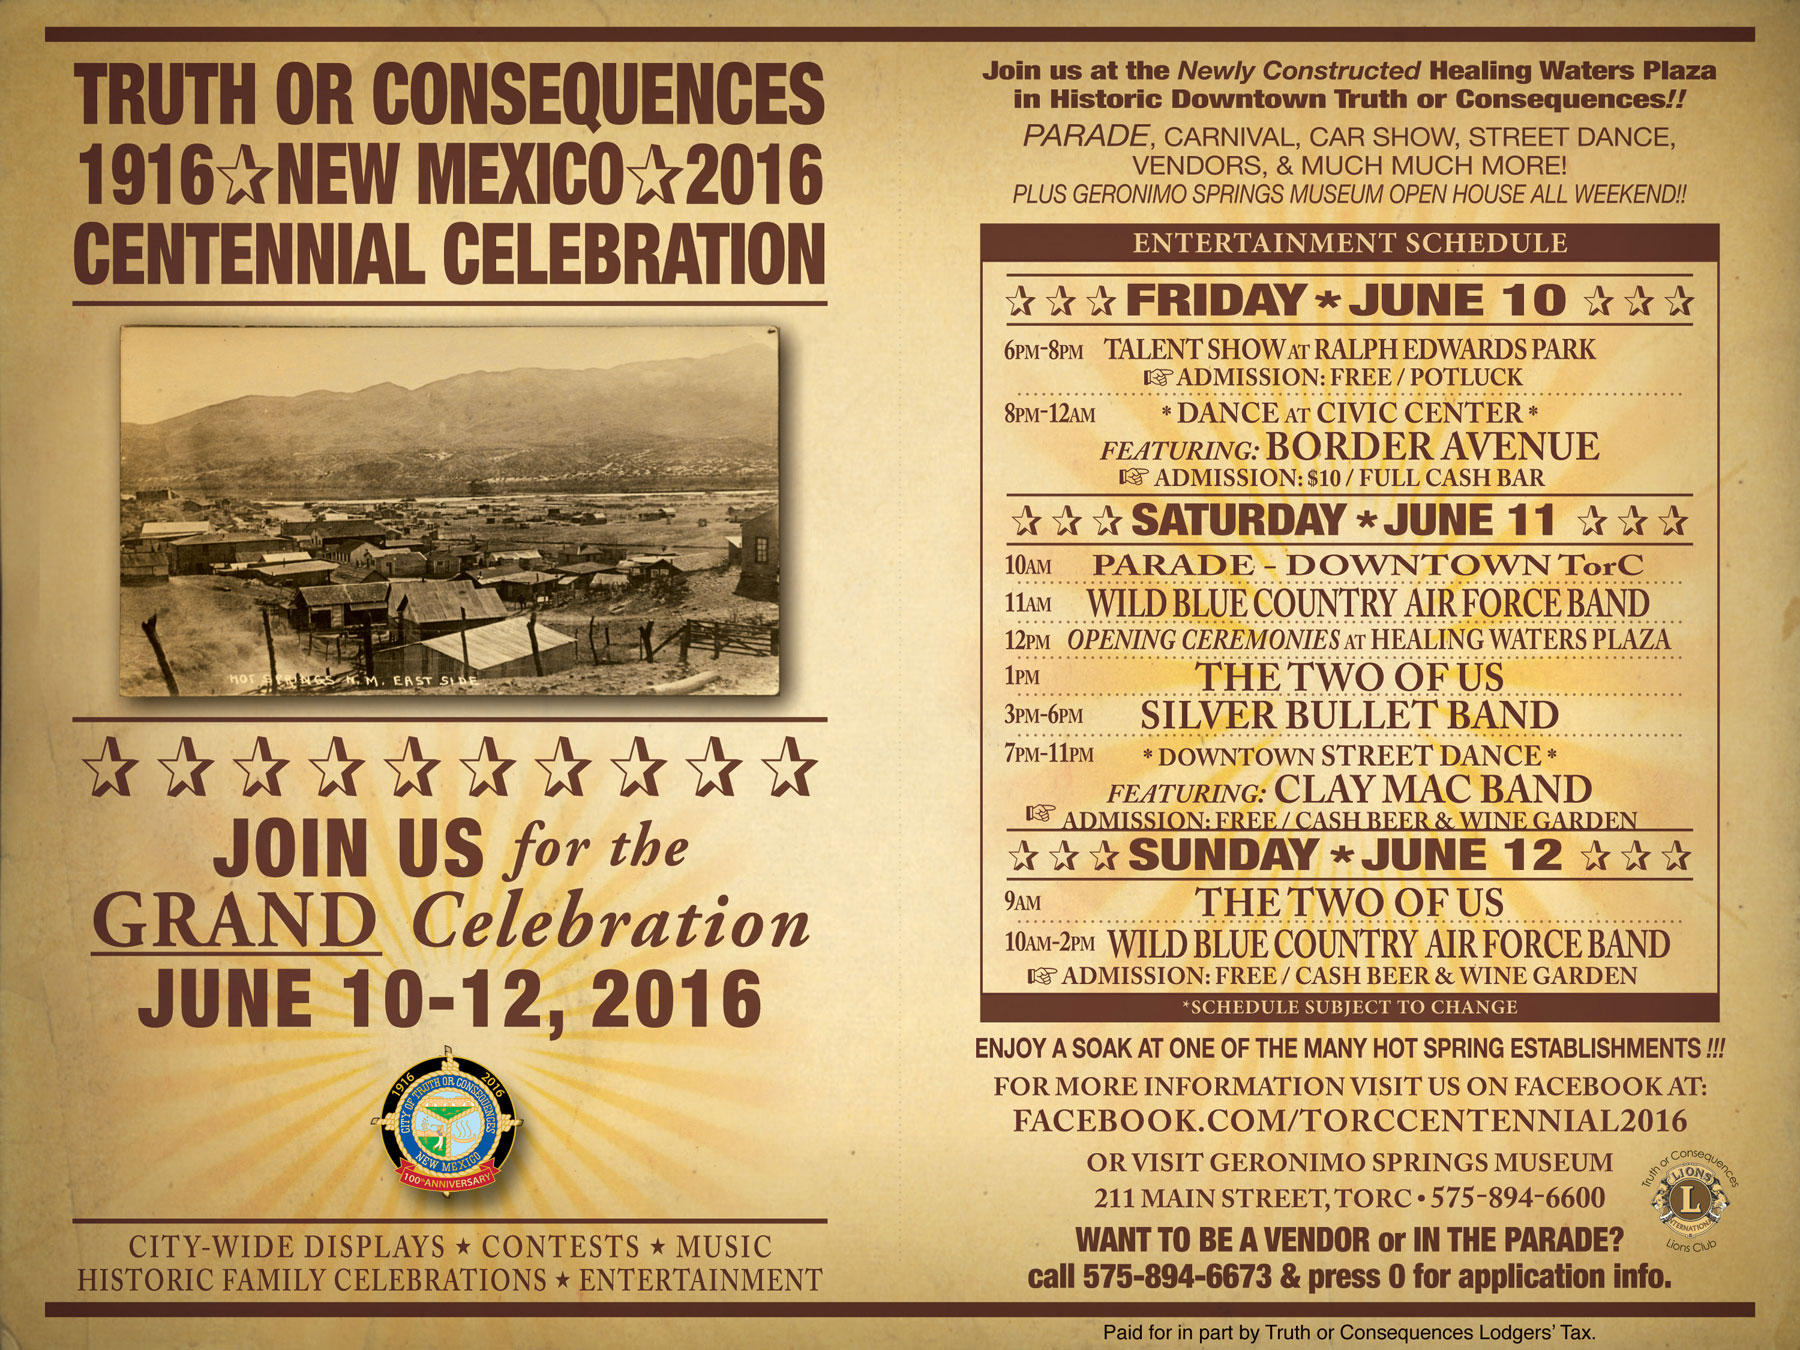 Truth or Consequences Centennial Celebration